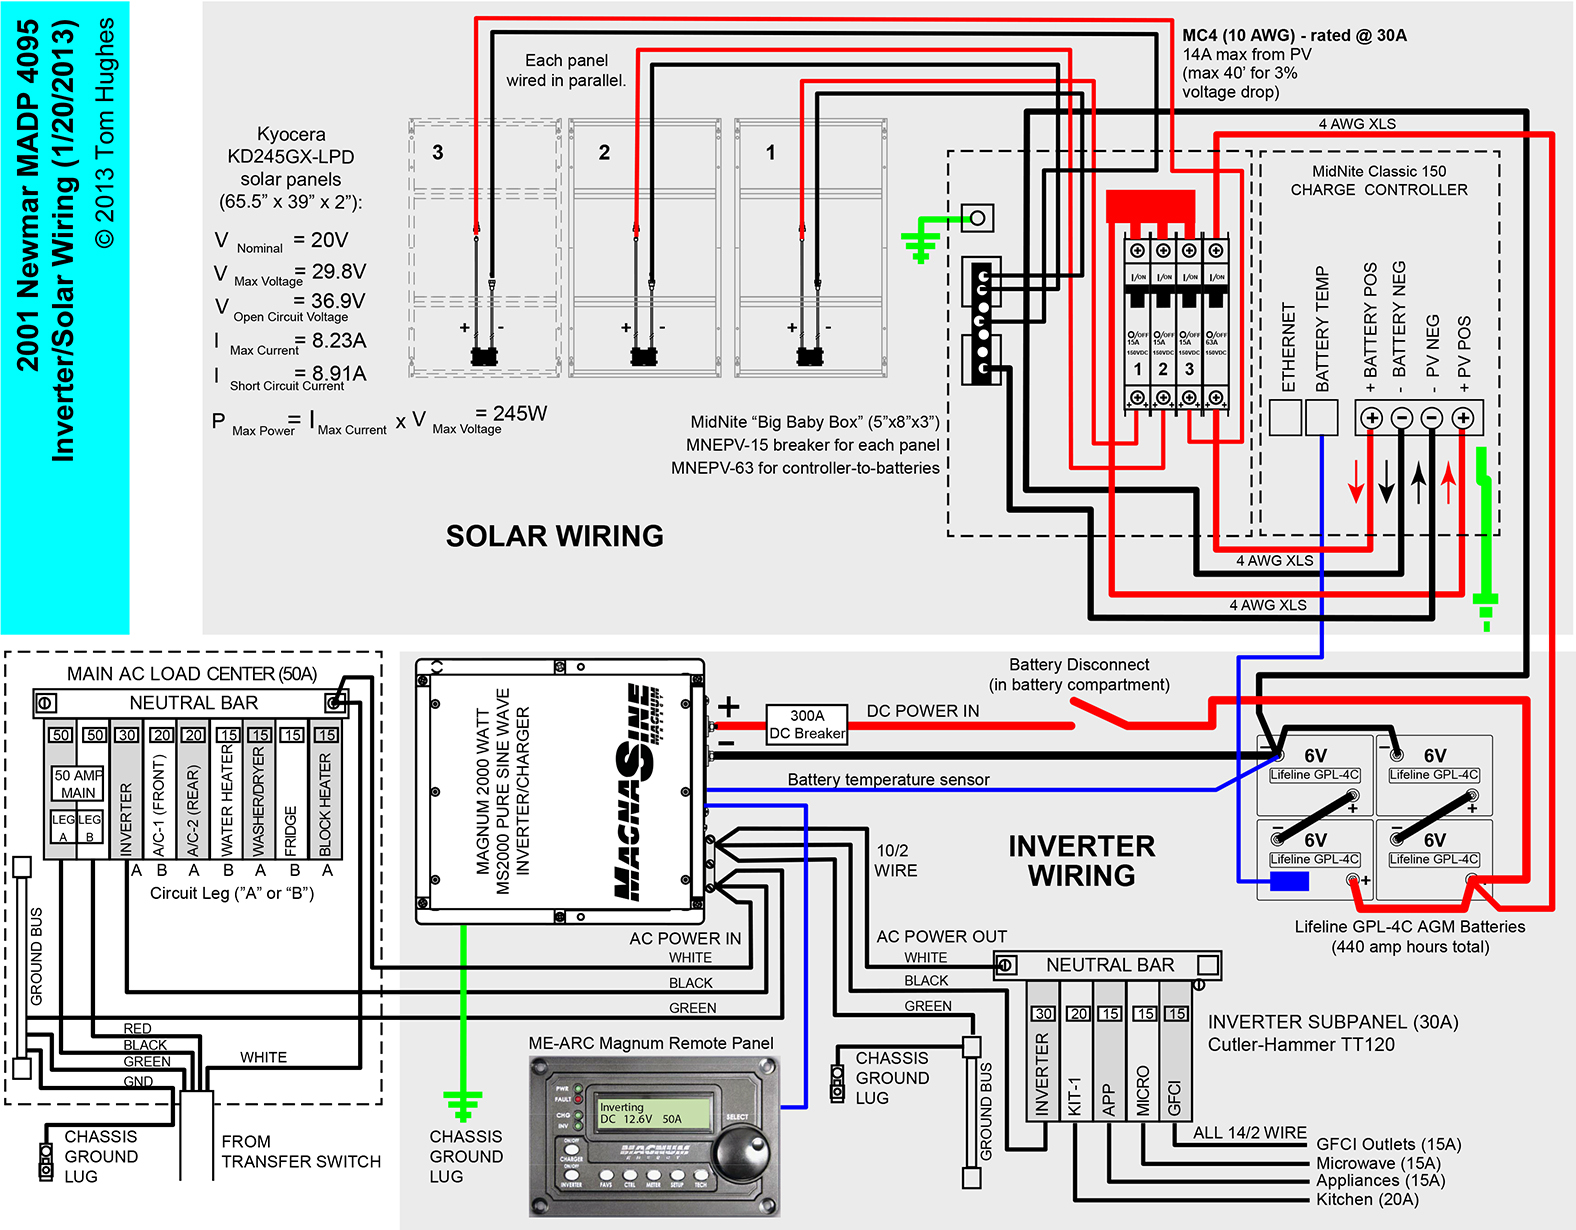 ms2000_newmar_inverter_wiring_01_20_2013 rv inverter diagram rv inverter transfer switch \u2022 wiring diagrams  at bakdesigns.co